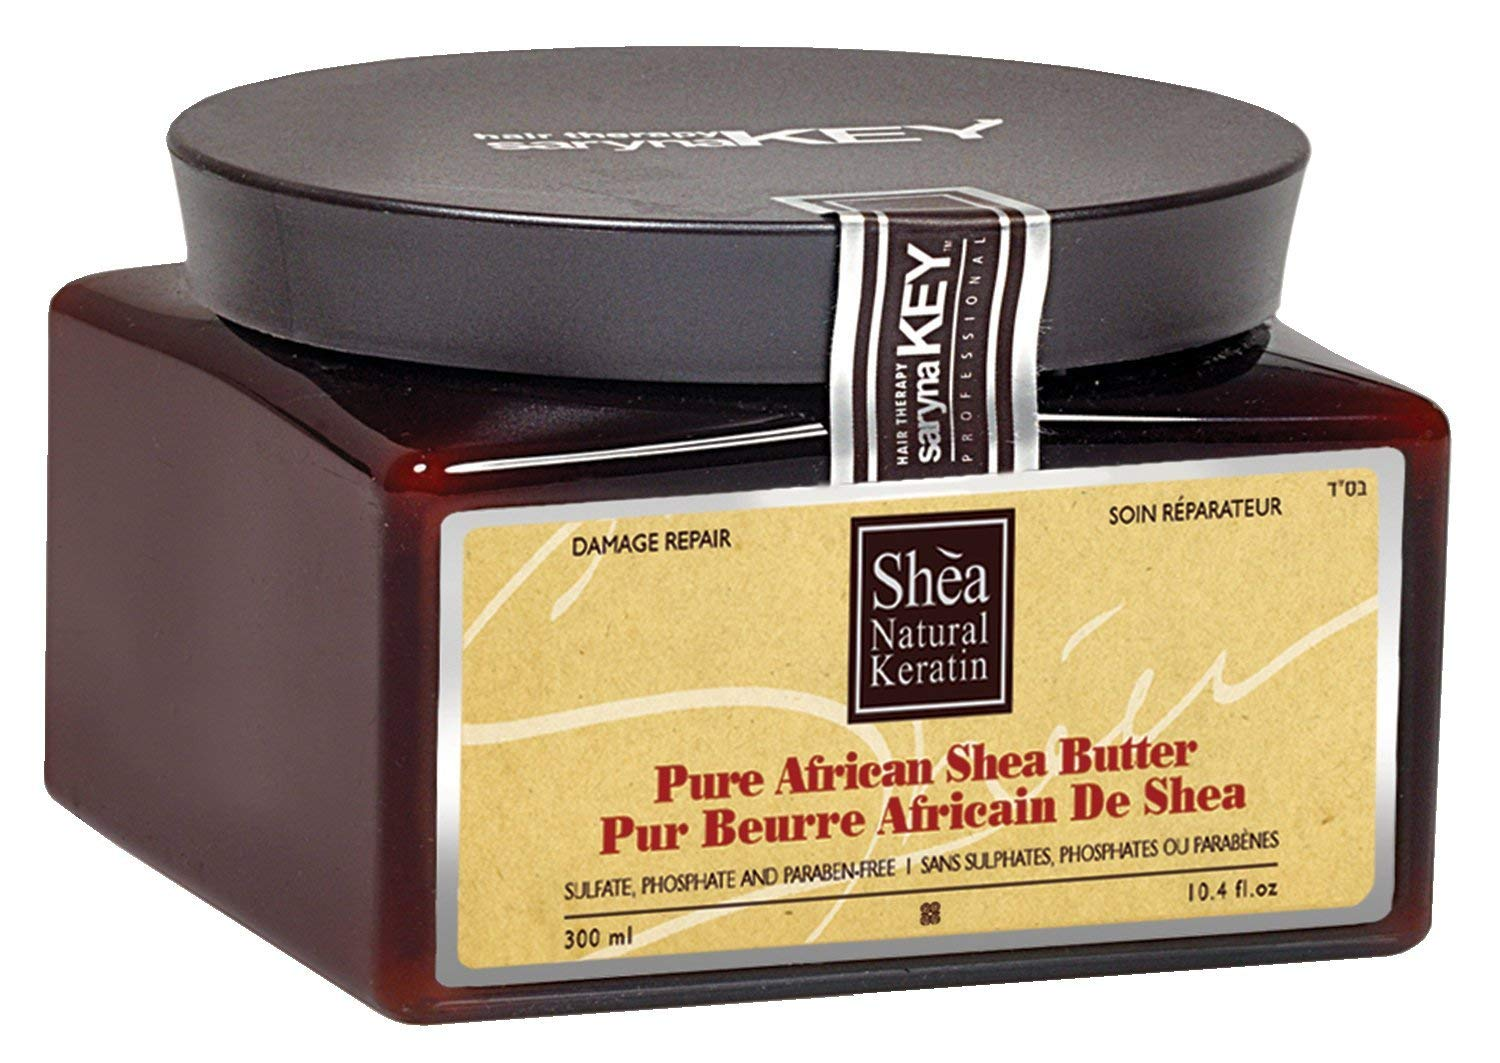 Saryna Key Damage Repair Shea Butter, Pure African Shea Butter for Natural Skin and Hair Moisturizer, Organic African Shea Butter - 300mL/ 10.14 FL.oz